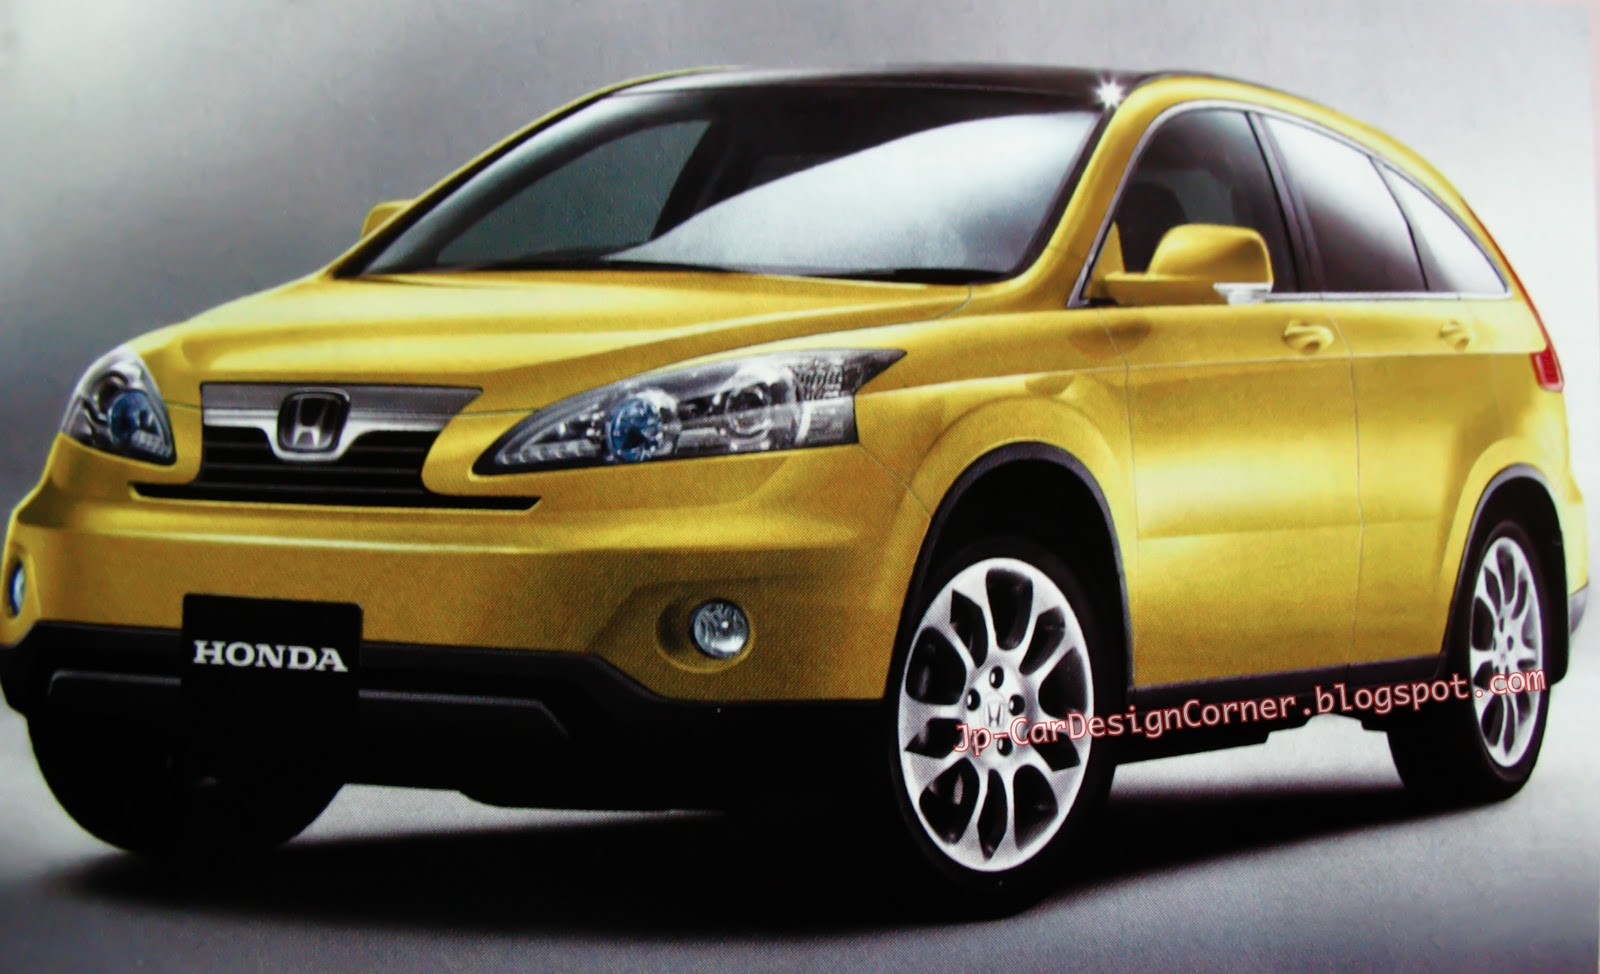 new cars bikes honda cr v 2012 features and official photos. Black Bedroom Furniture Sets. Home Design Ideas